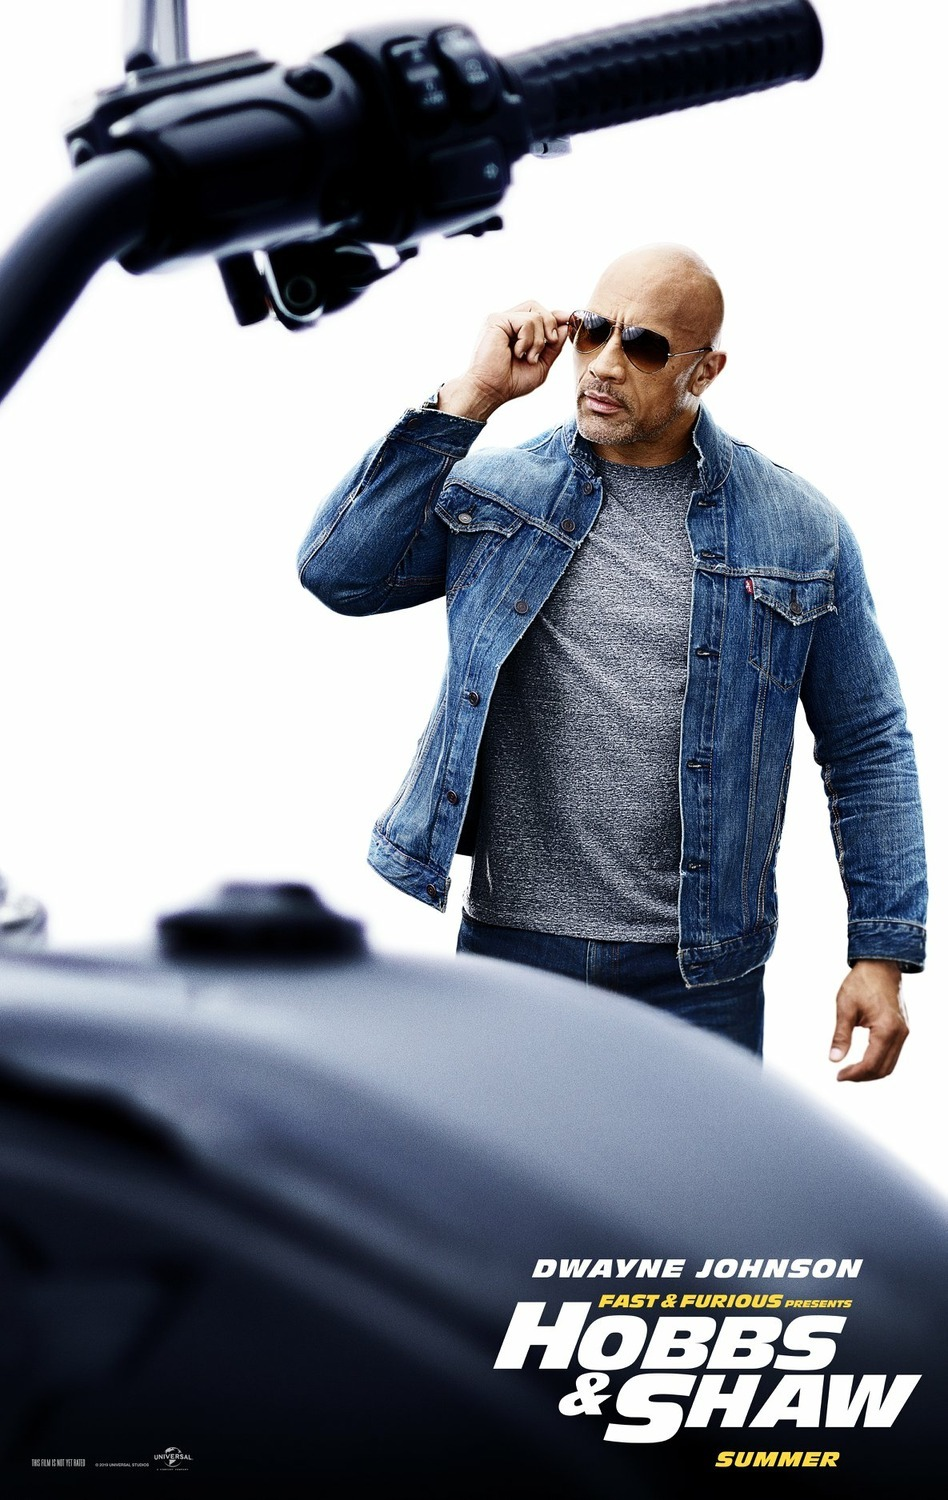 Fast & Furious Presents Hobbs & Shaw 2019 Gallery